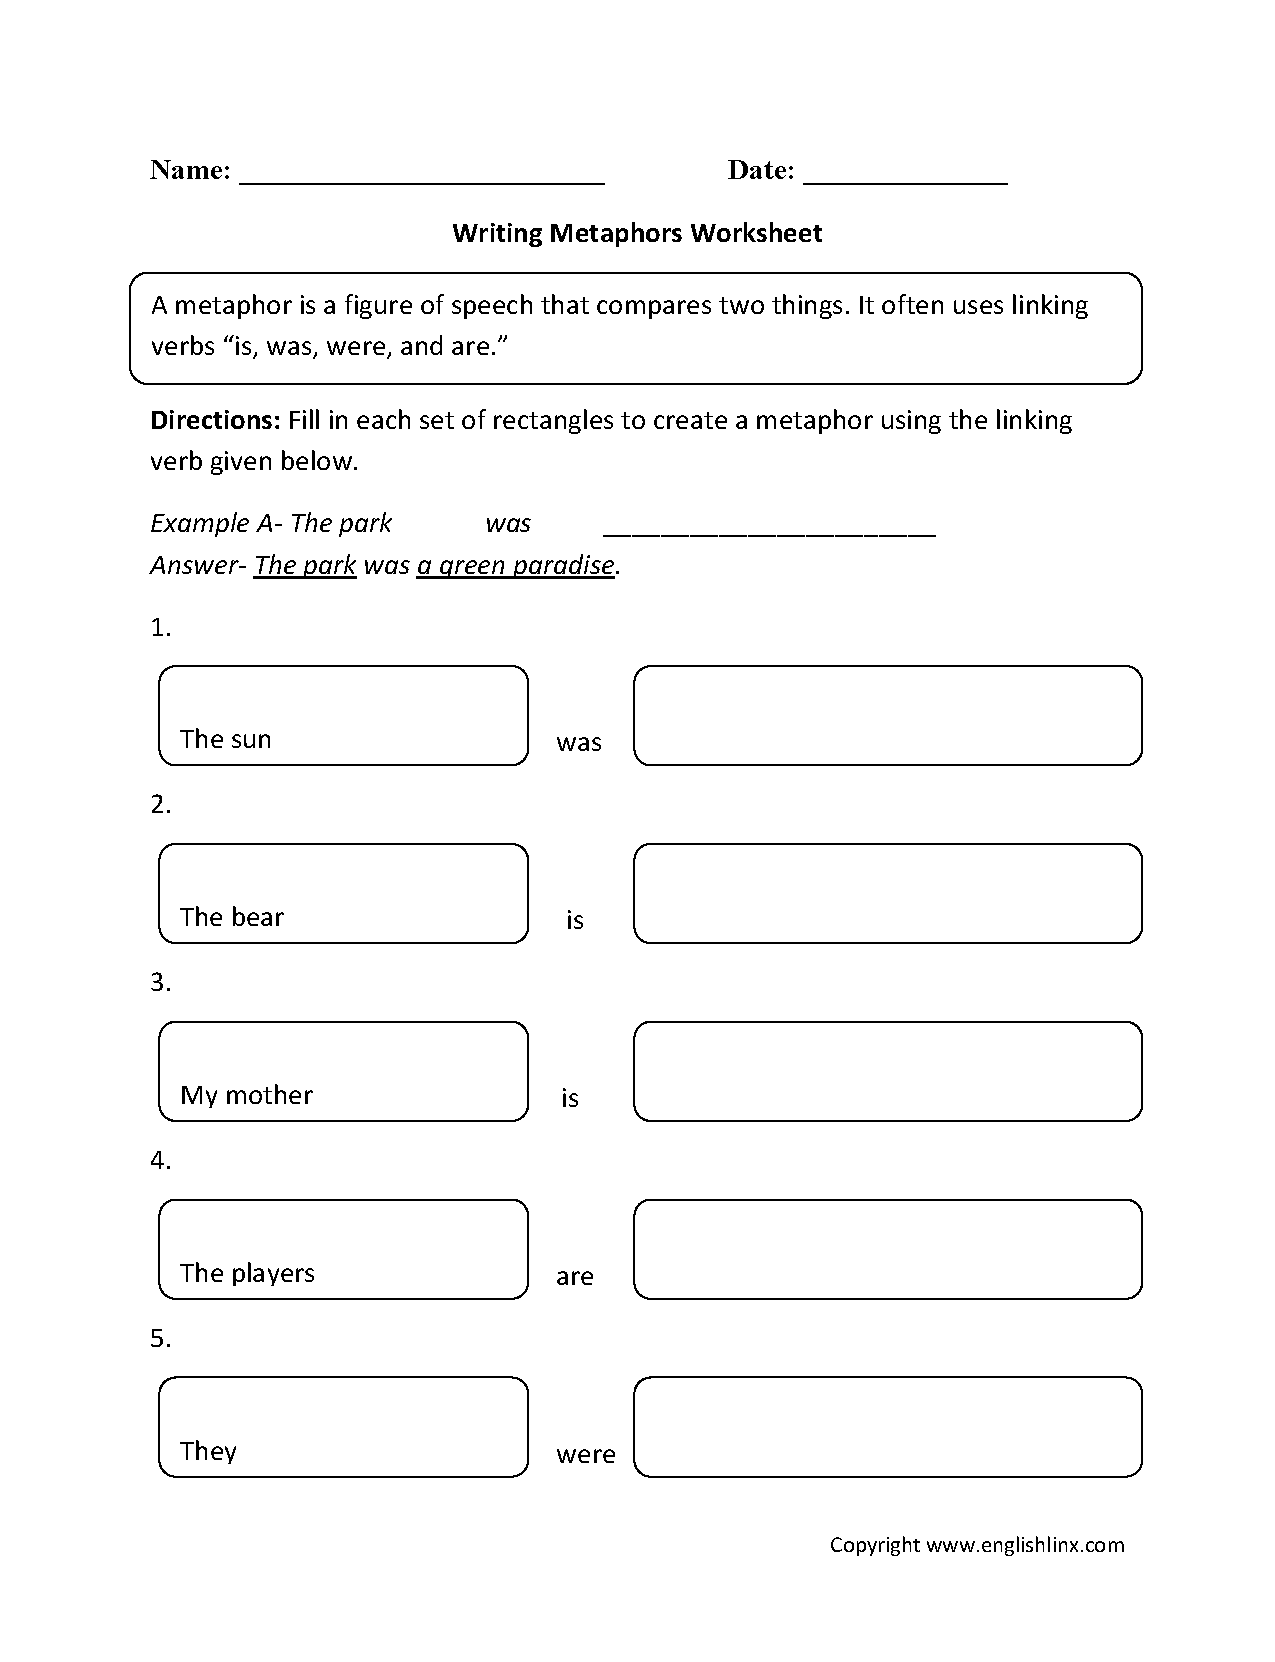 Aldiablosus  Terrific Englishlinxcom  Metaphors Worksheets With Outstanding Worksheet With Easy On The Eye Math Venn Diagram Worksheets Also The Courage Of Sarah Noble Worksheet In Addition Label Human Body Worksheet And Charts And Tables Worksheets As Well As Free Printable Worksheets For Lkg Additionally Passive Voice Exercises Worksheet From Englishlinxcom With Aldiablosus  Outstanding Englishlinxcom  Metaphors Worksheets With Easy On The Eye Worksheet And Terrific Math Venn Diagram Worksheets Also The Courage Of Sarah Noble Worksheet In Addition Label Human Body Worksheet From Englishlinxcom